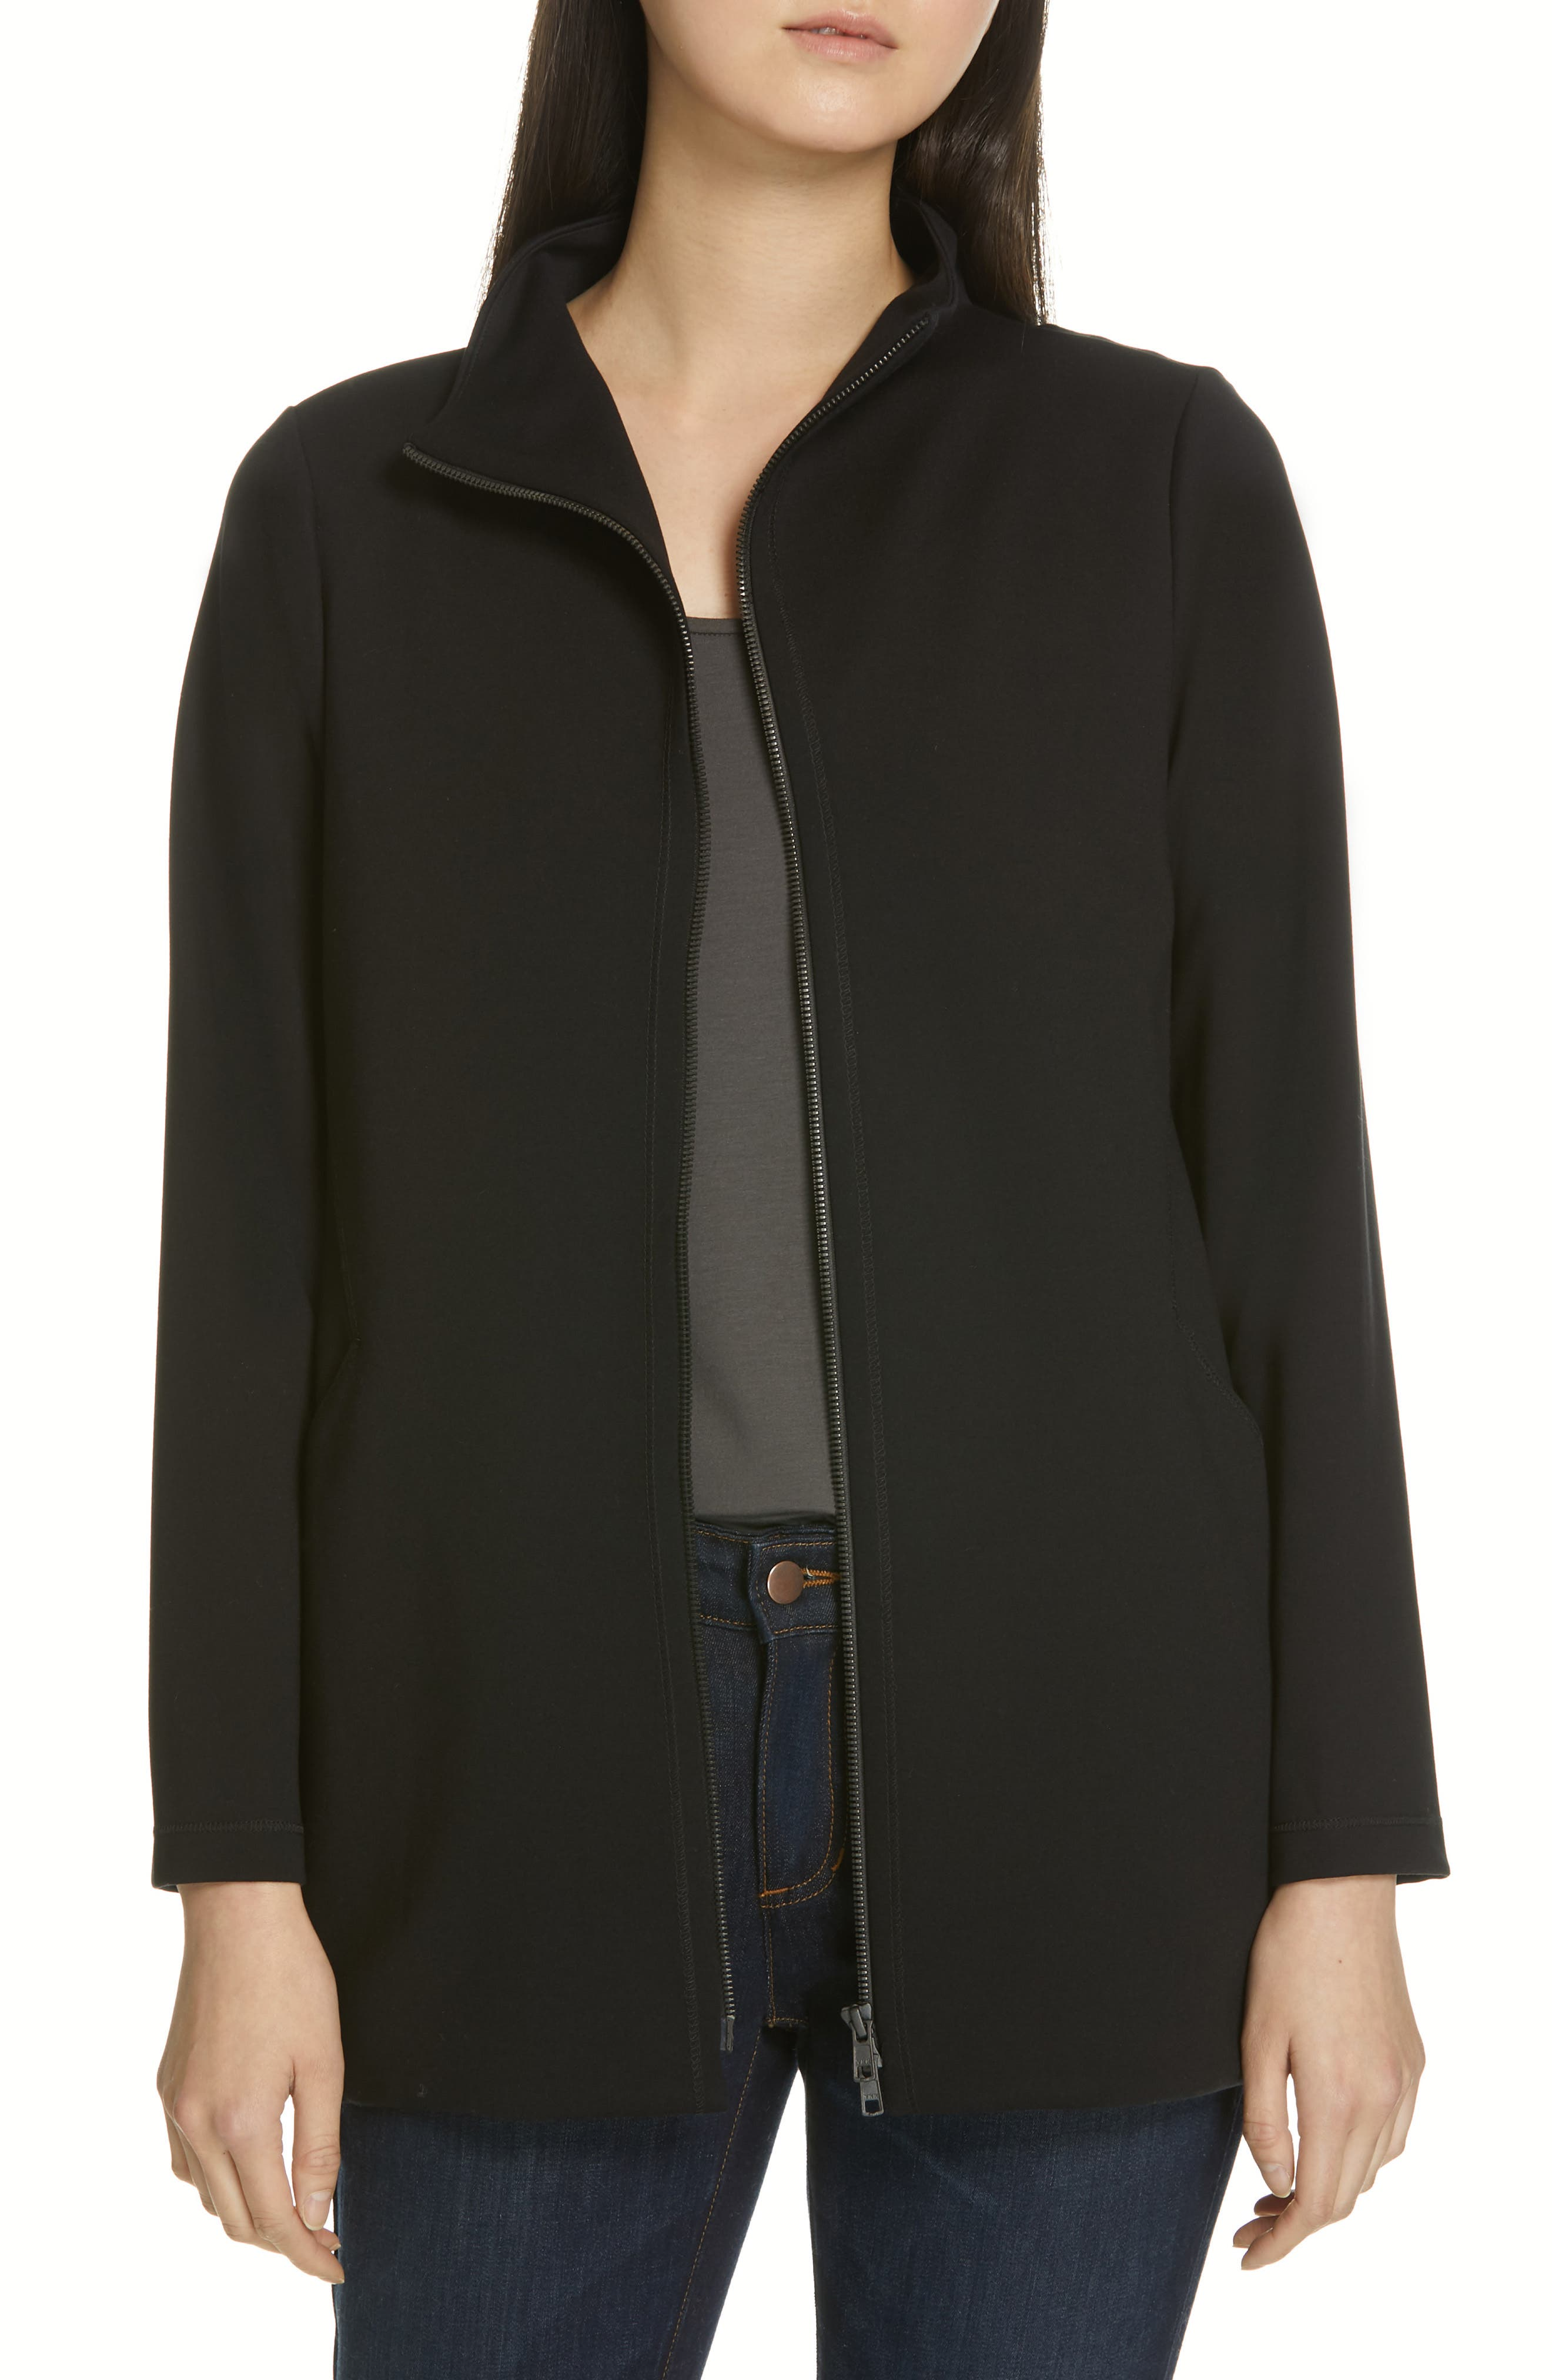 EILEEN FISHER Zip Front Jacket, Main, color, 001